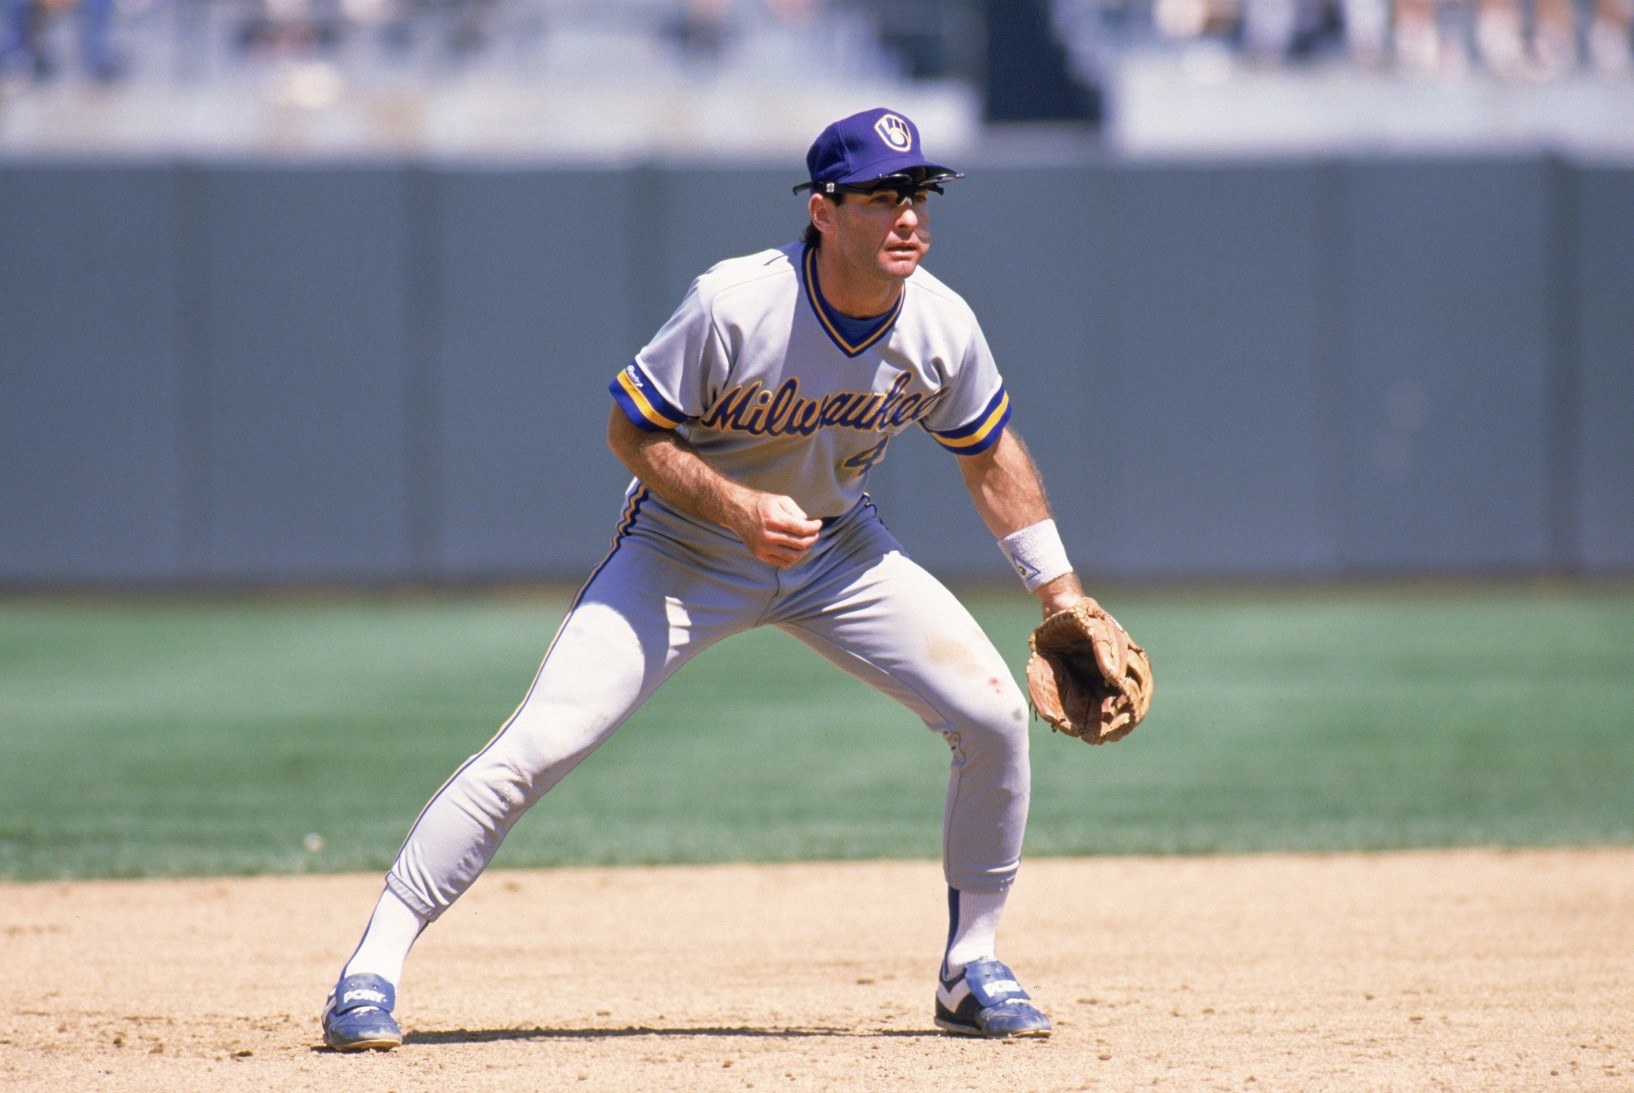 Paul Molitor in the field with the Brewers